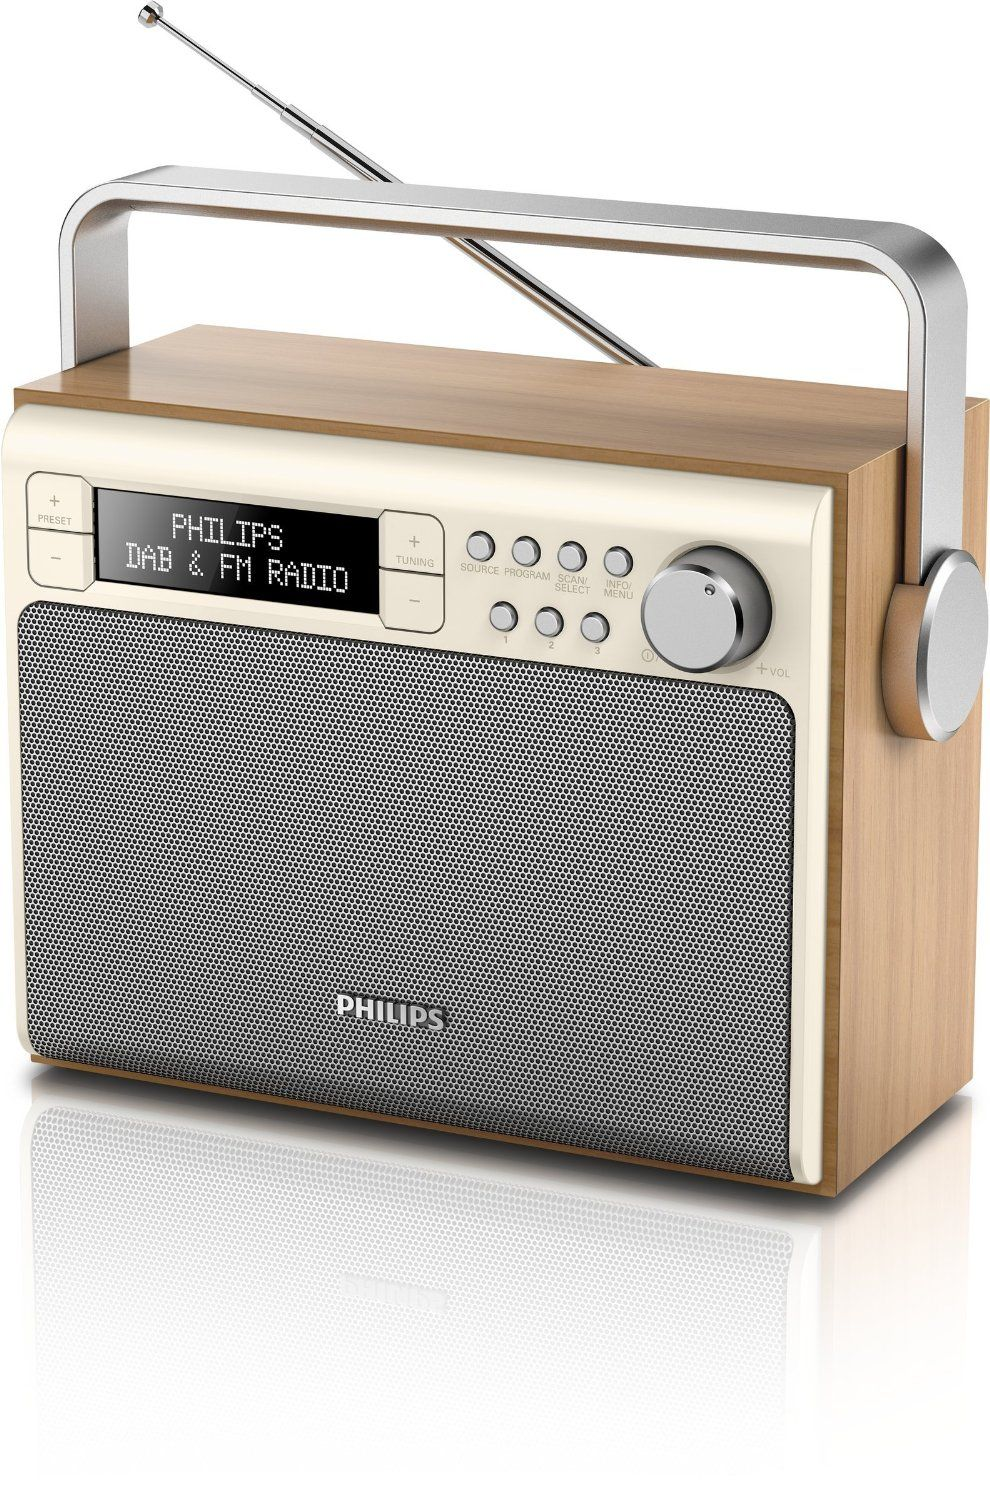 philips ae5020 12 radio 3 w pantalla lcd dab. Black Bedroom Furniture Sets. Home Design Ideas